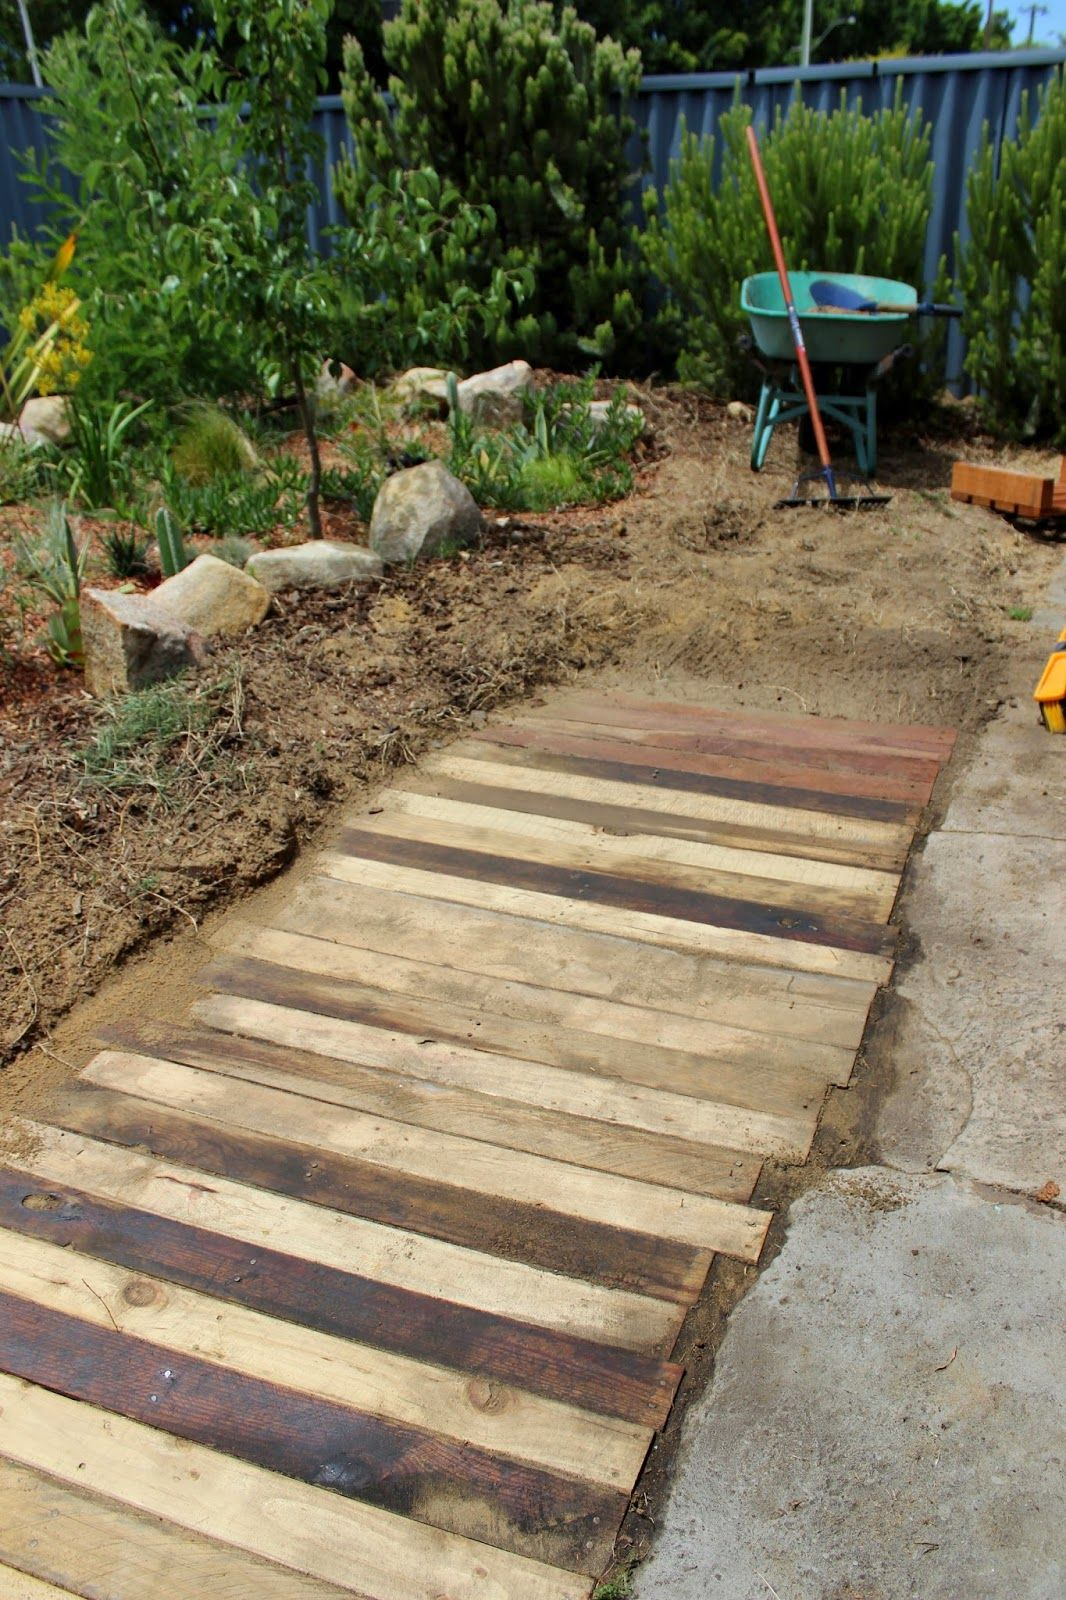 Crumbs: Wooden pallet walkway/footpath